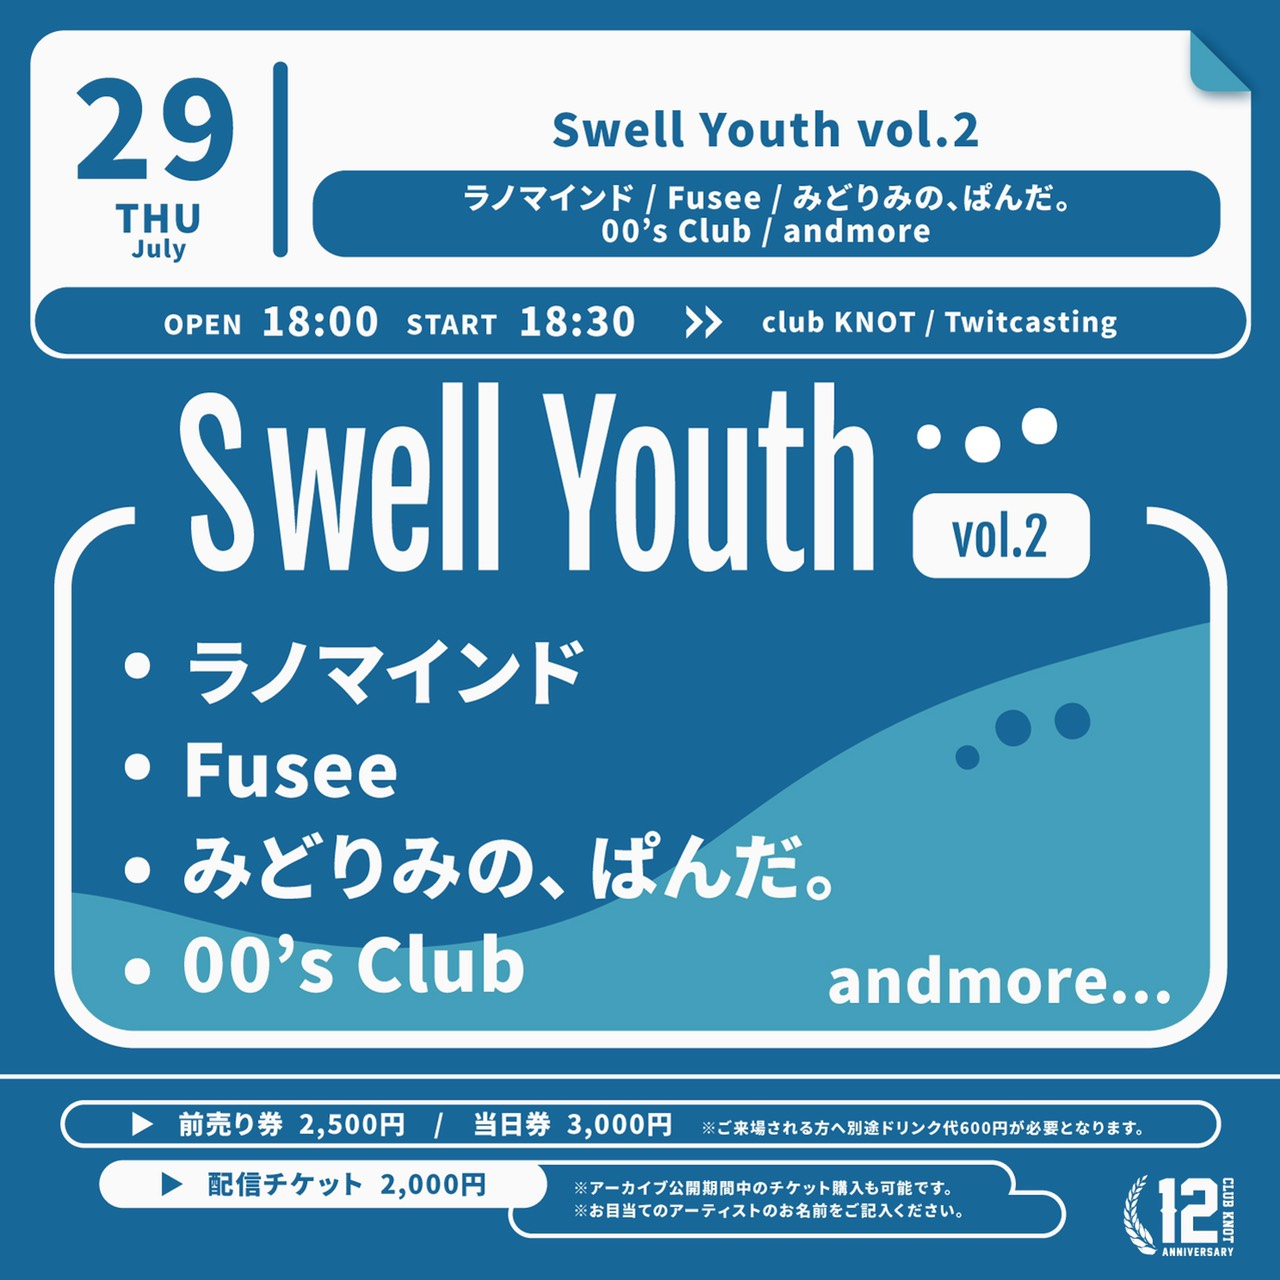 Swell Youth vol.2